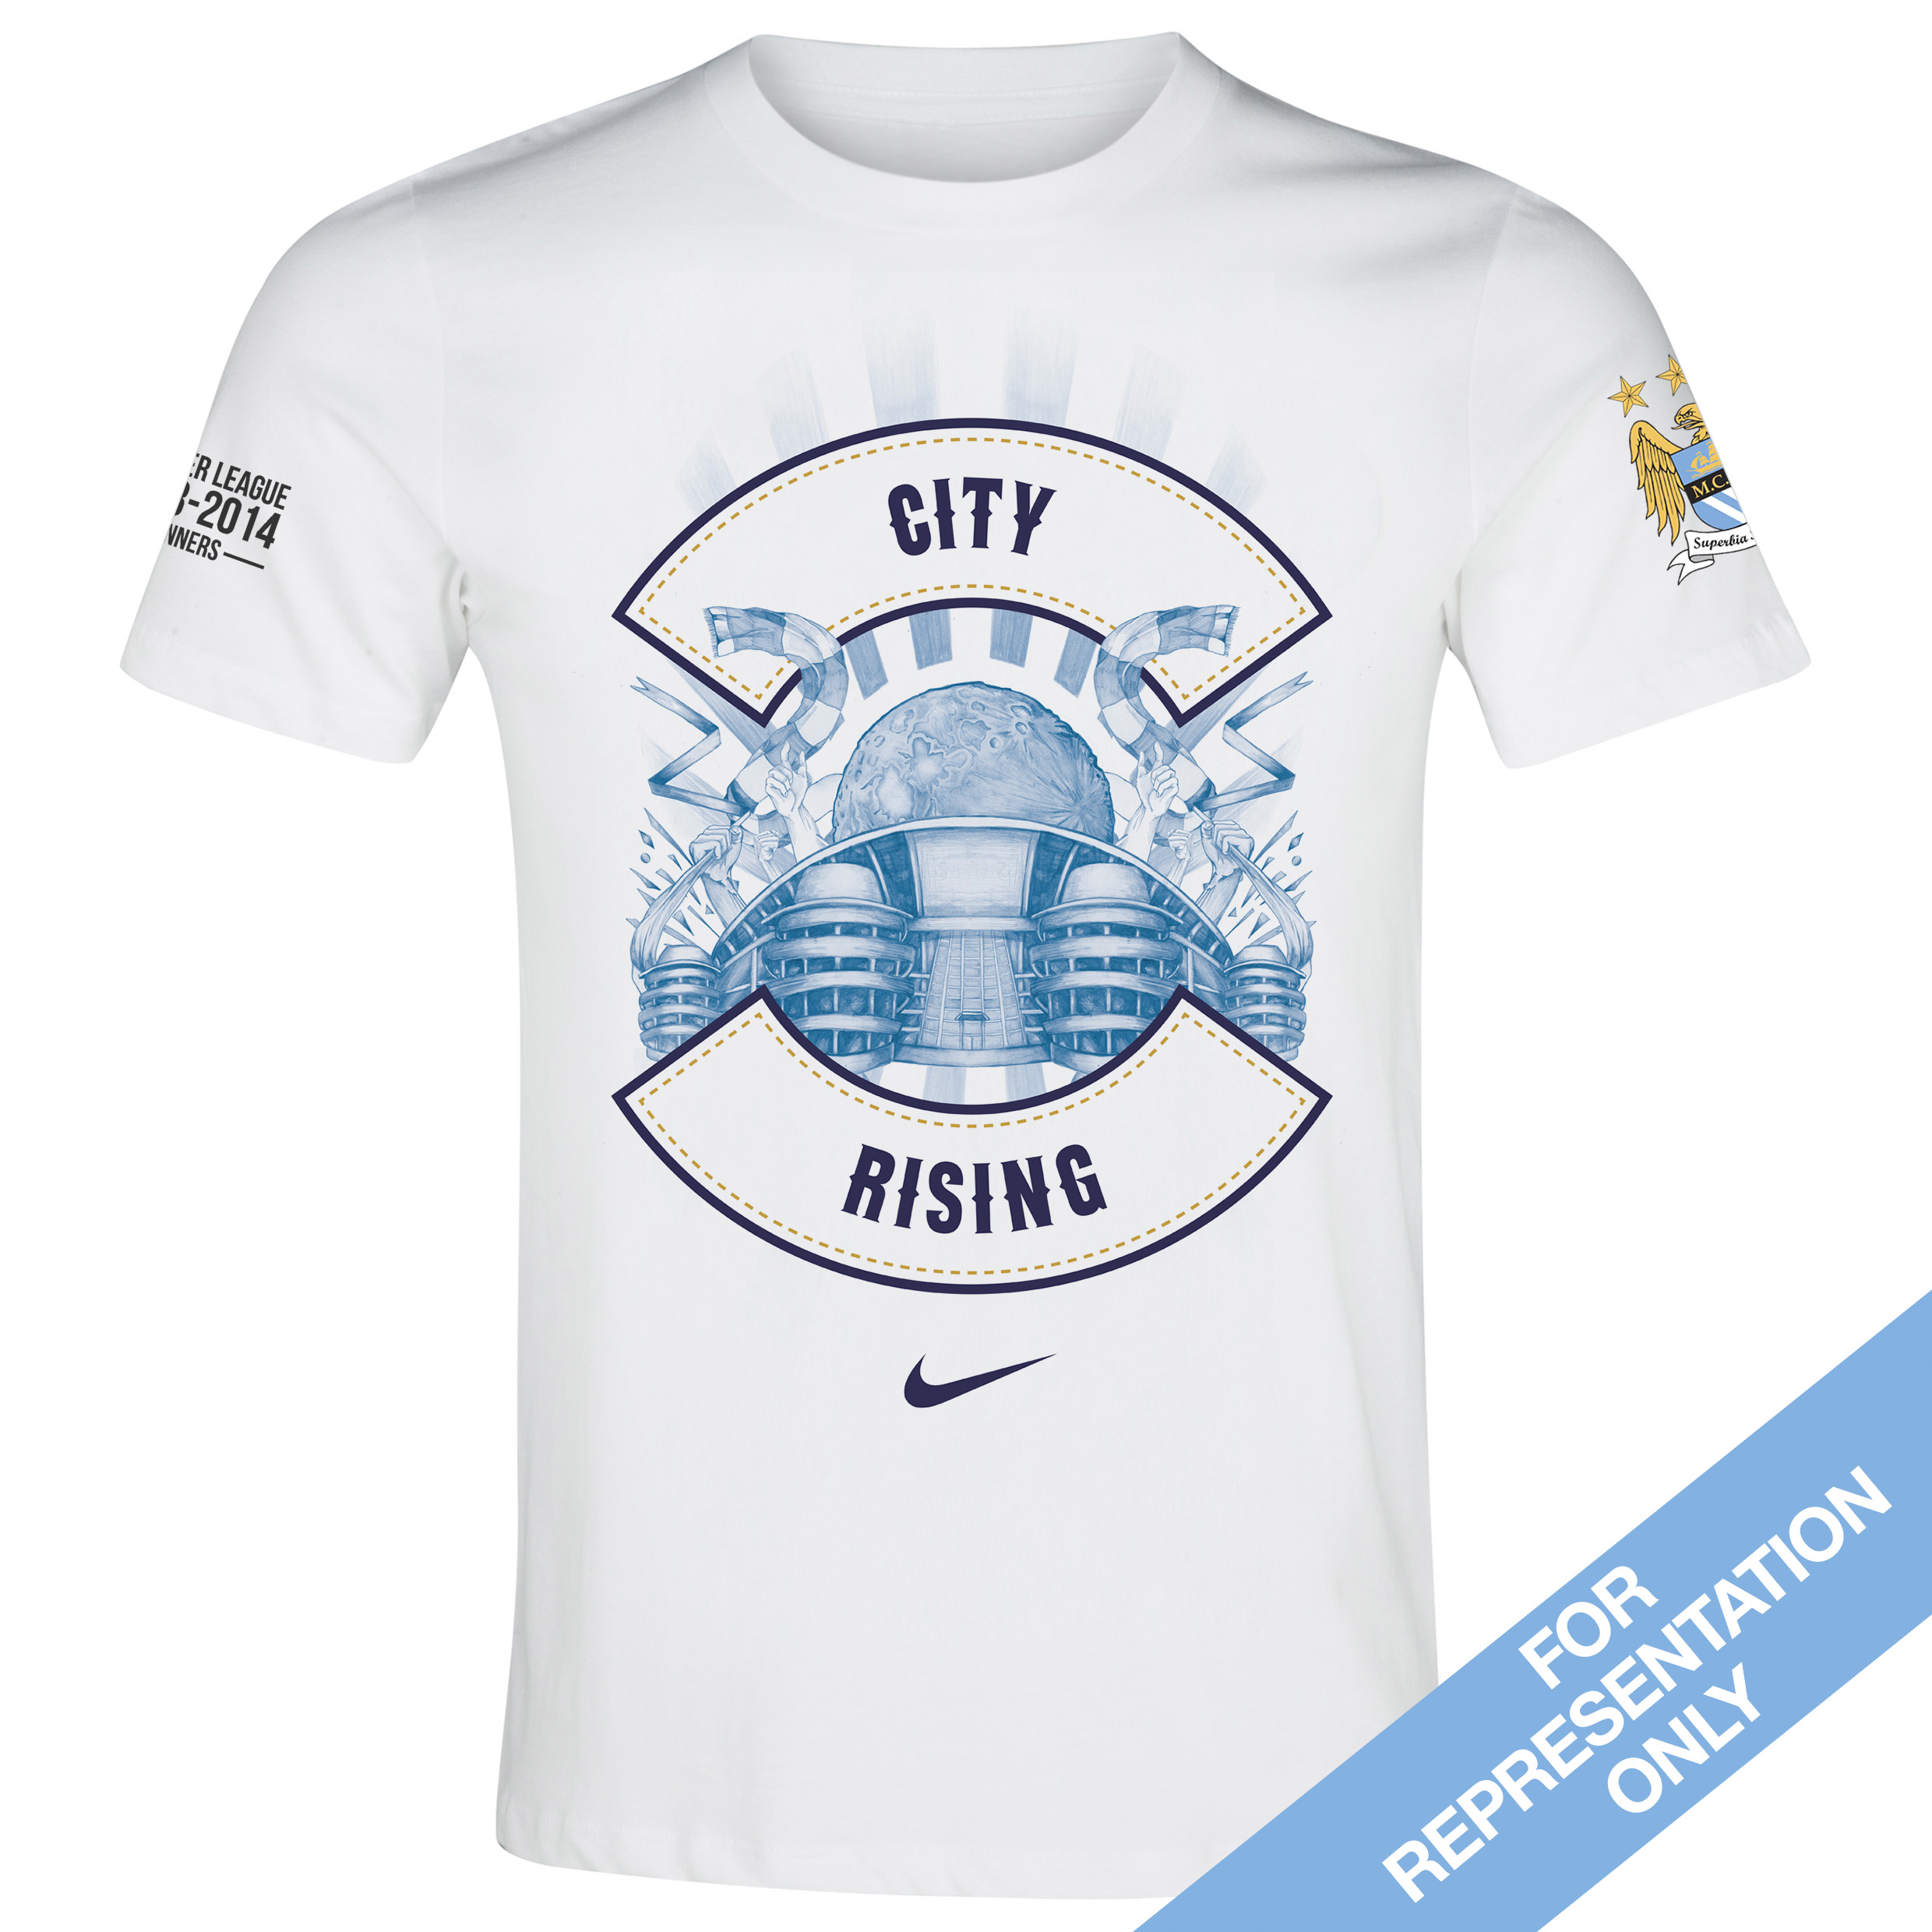 Manchester City Premier League Winners 2014 T-Shirt White